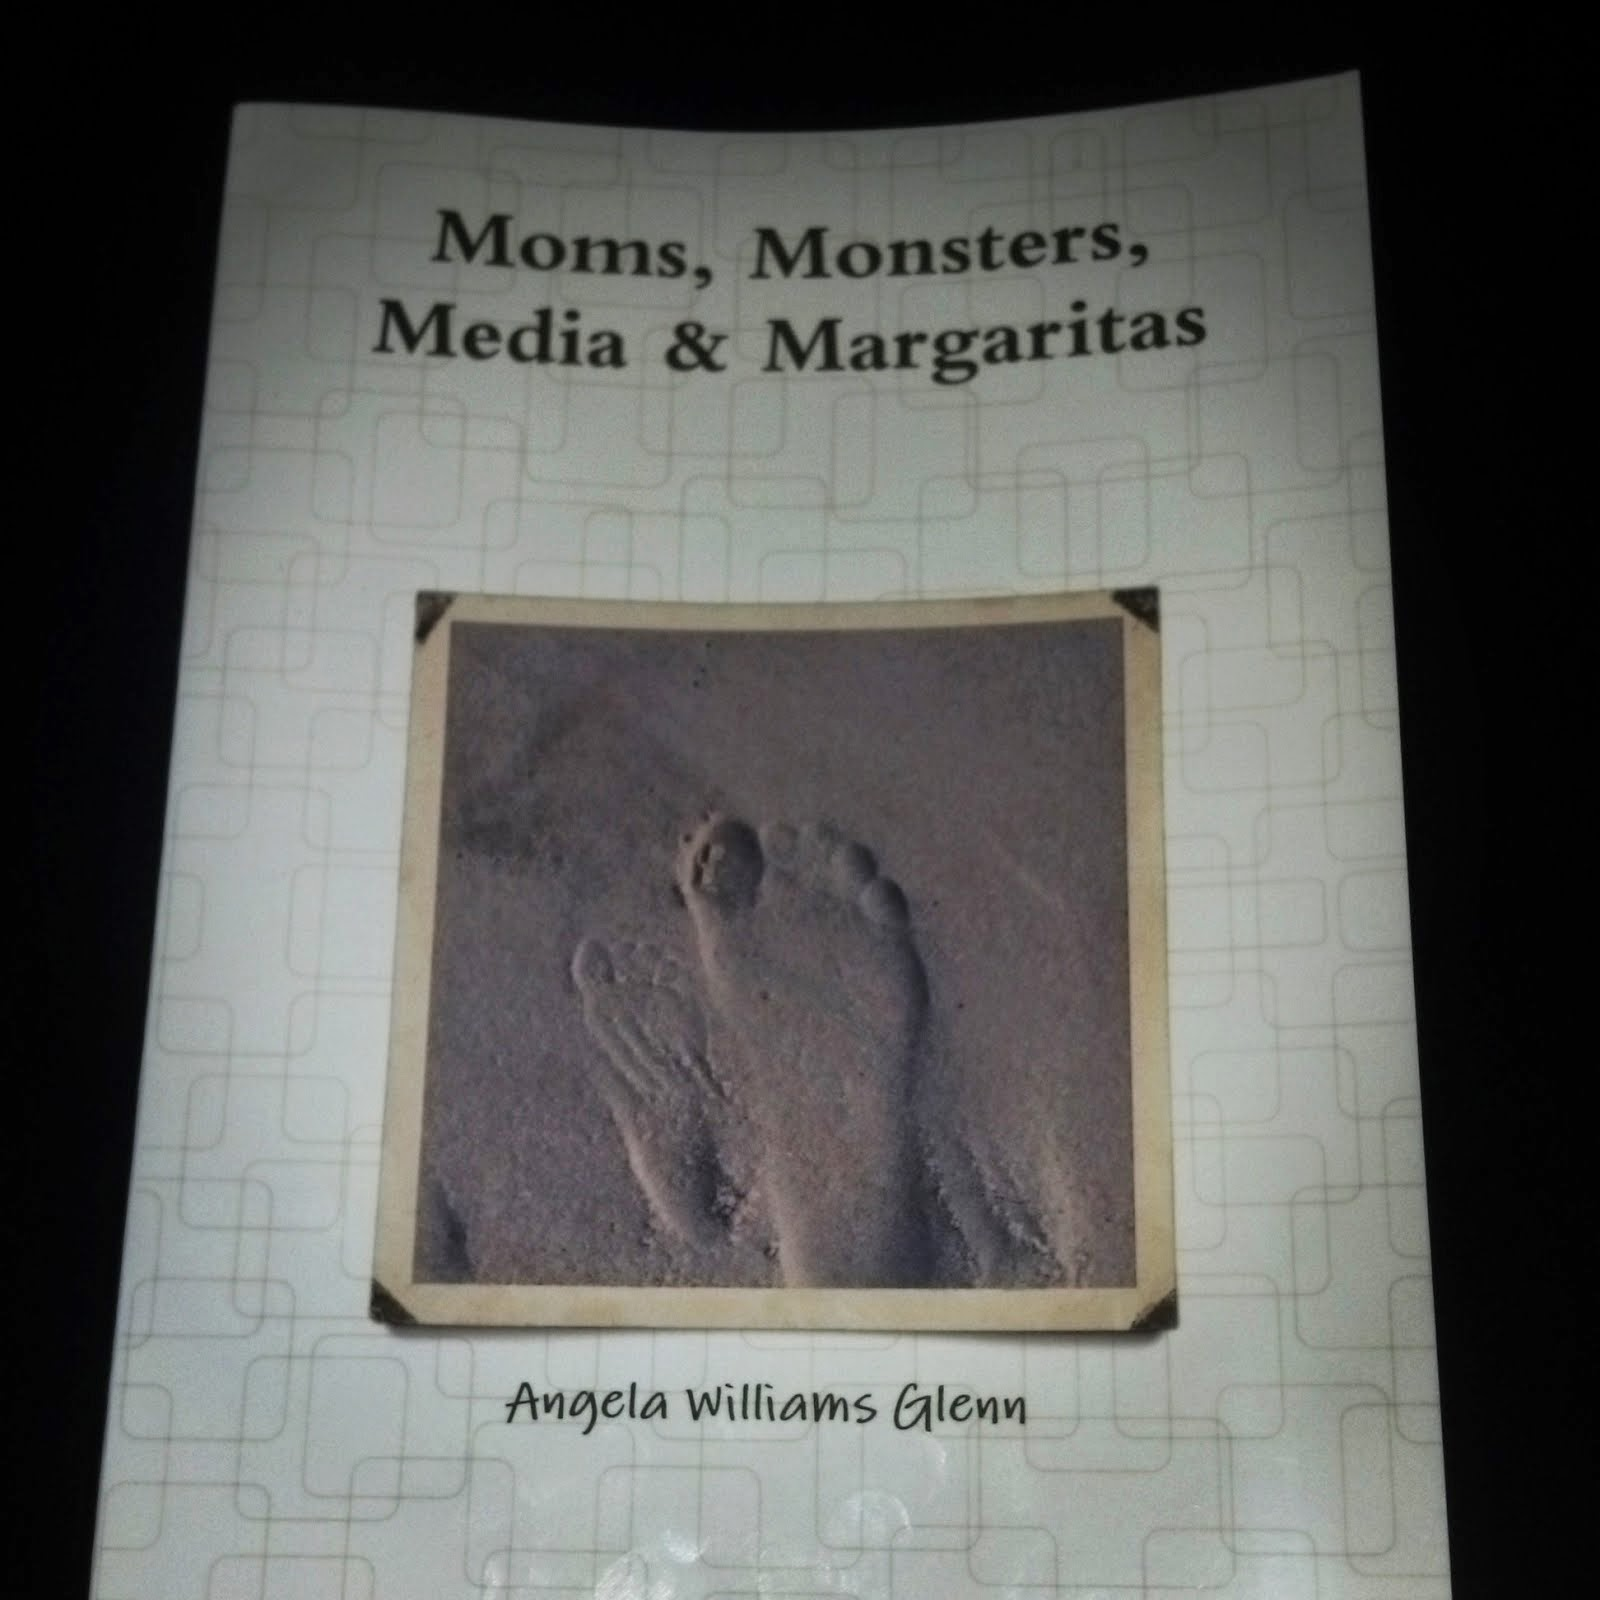 Print Copy of Moms, Monsters, Media & Margaritas for $10.00